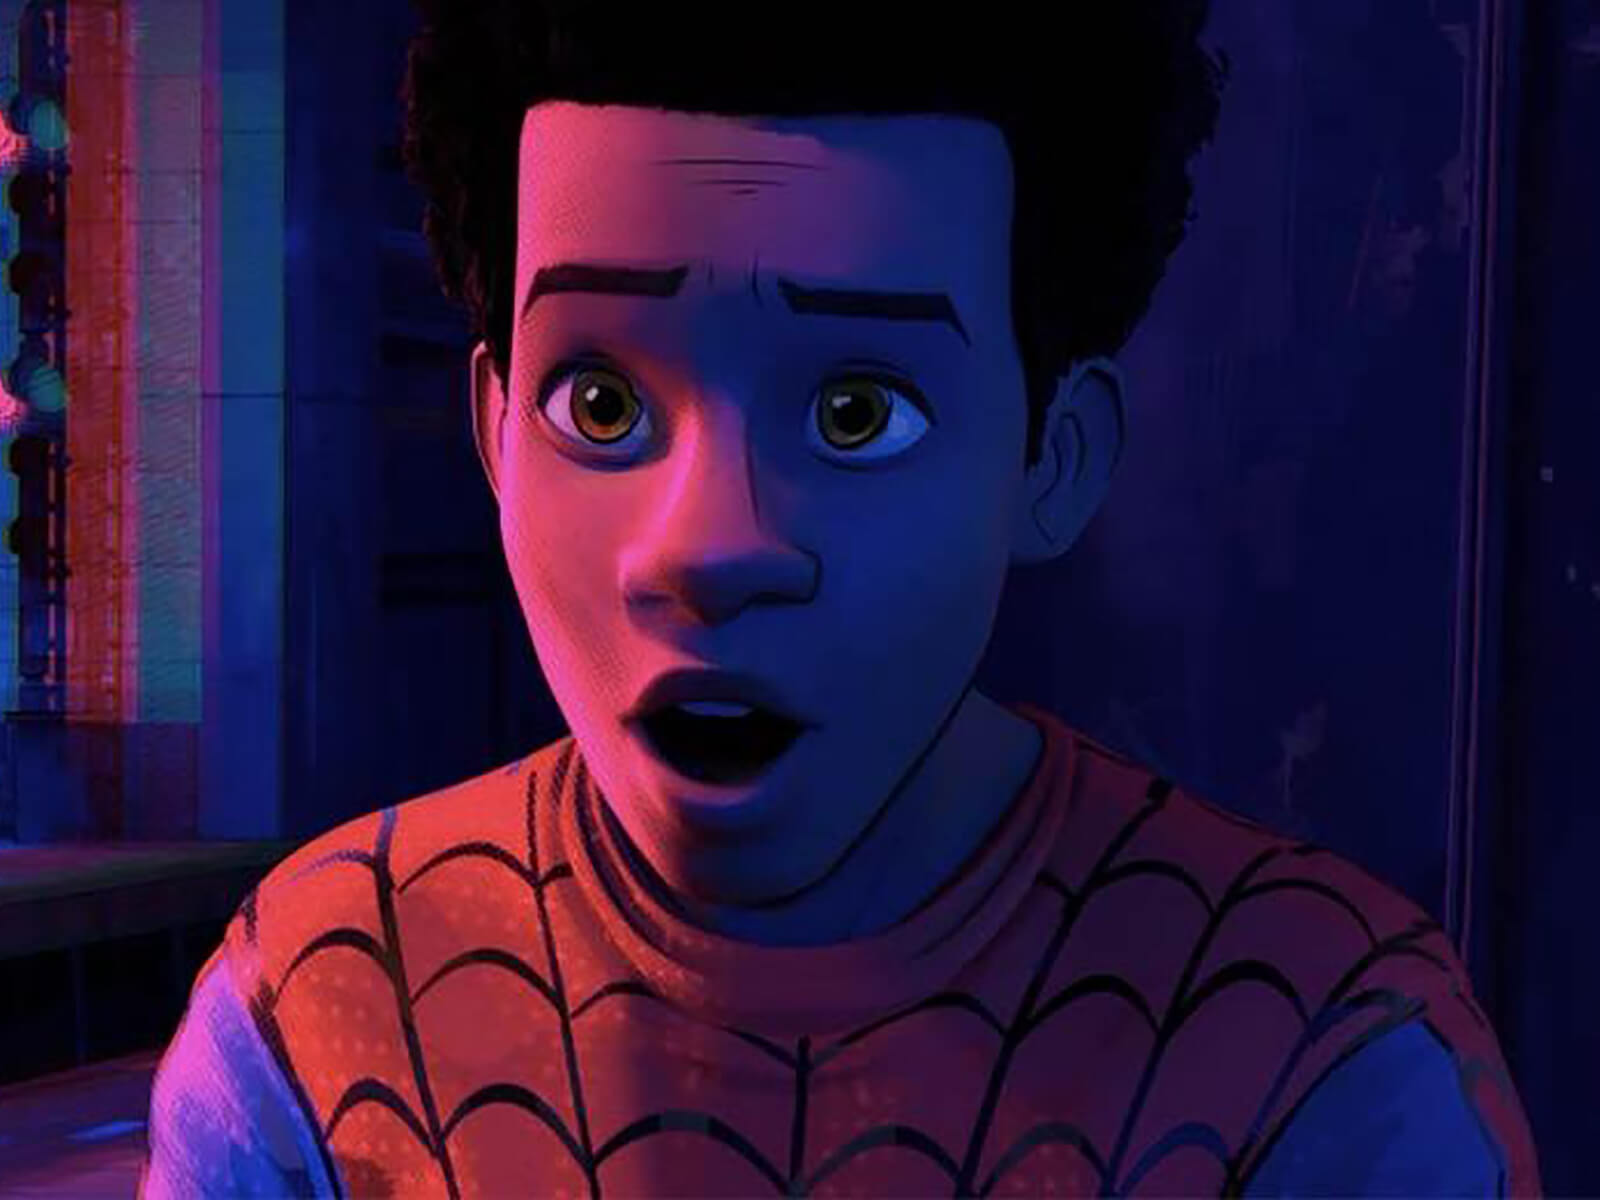 Still of Miles Morales from Spider-Man: Into the Spider-Verse